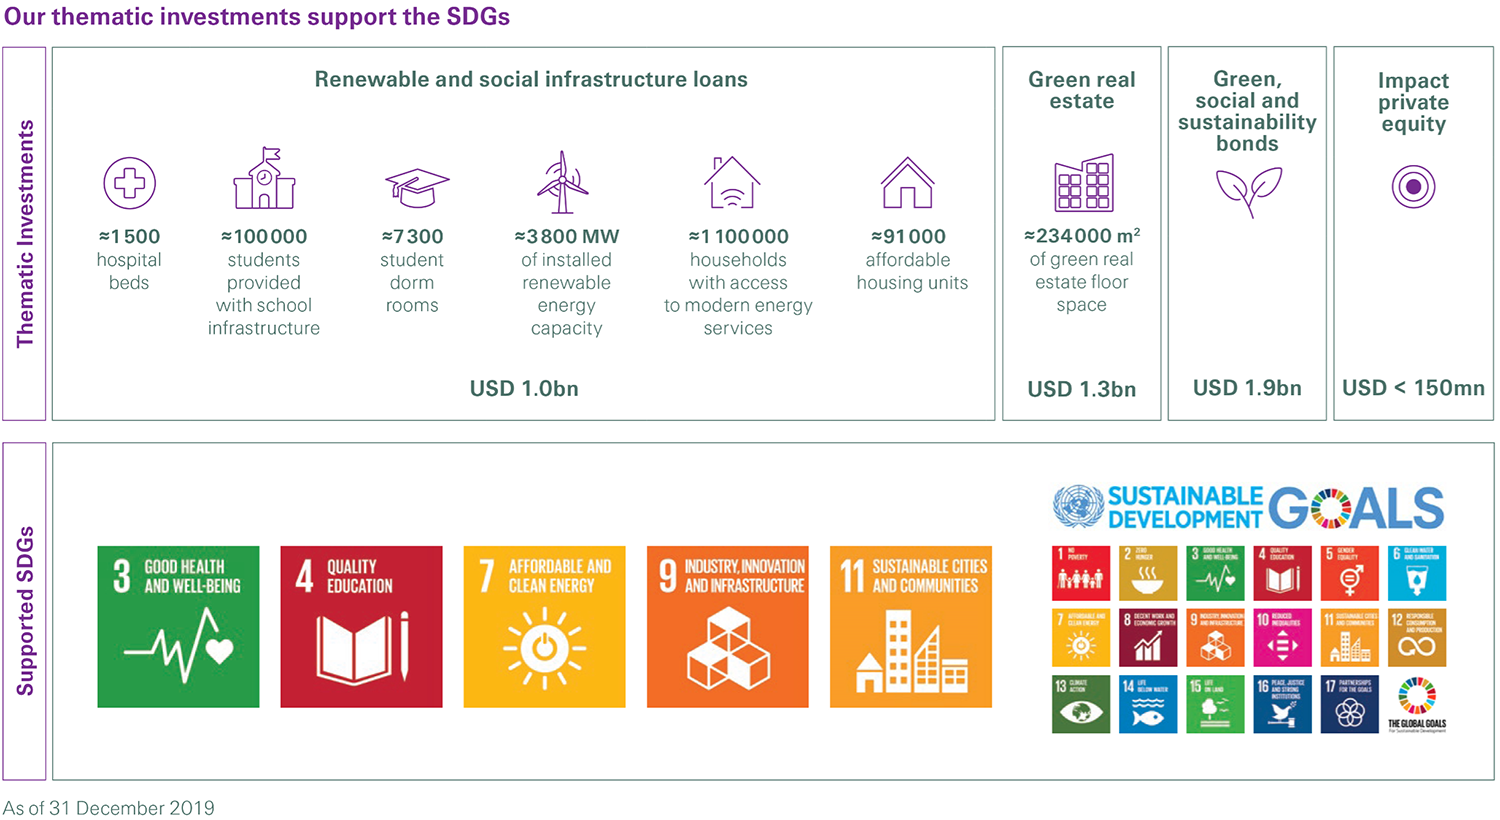 Swiss Re thematic investments support the Sustainable Development Goals